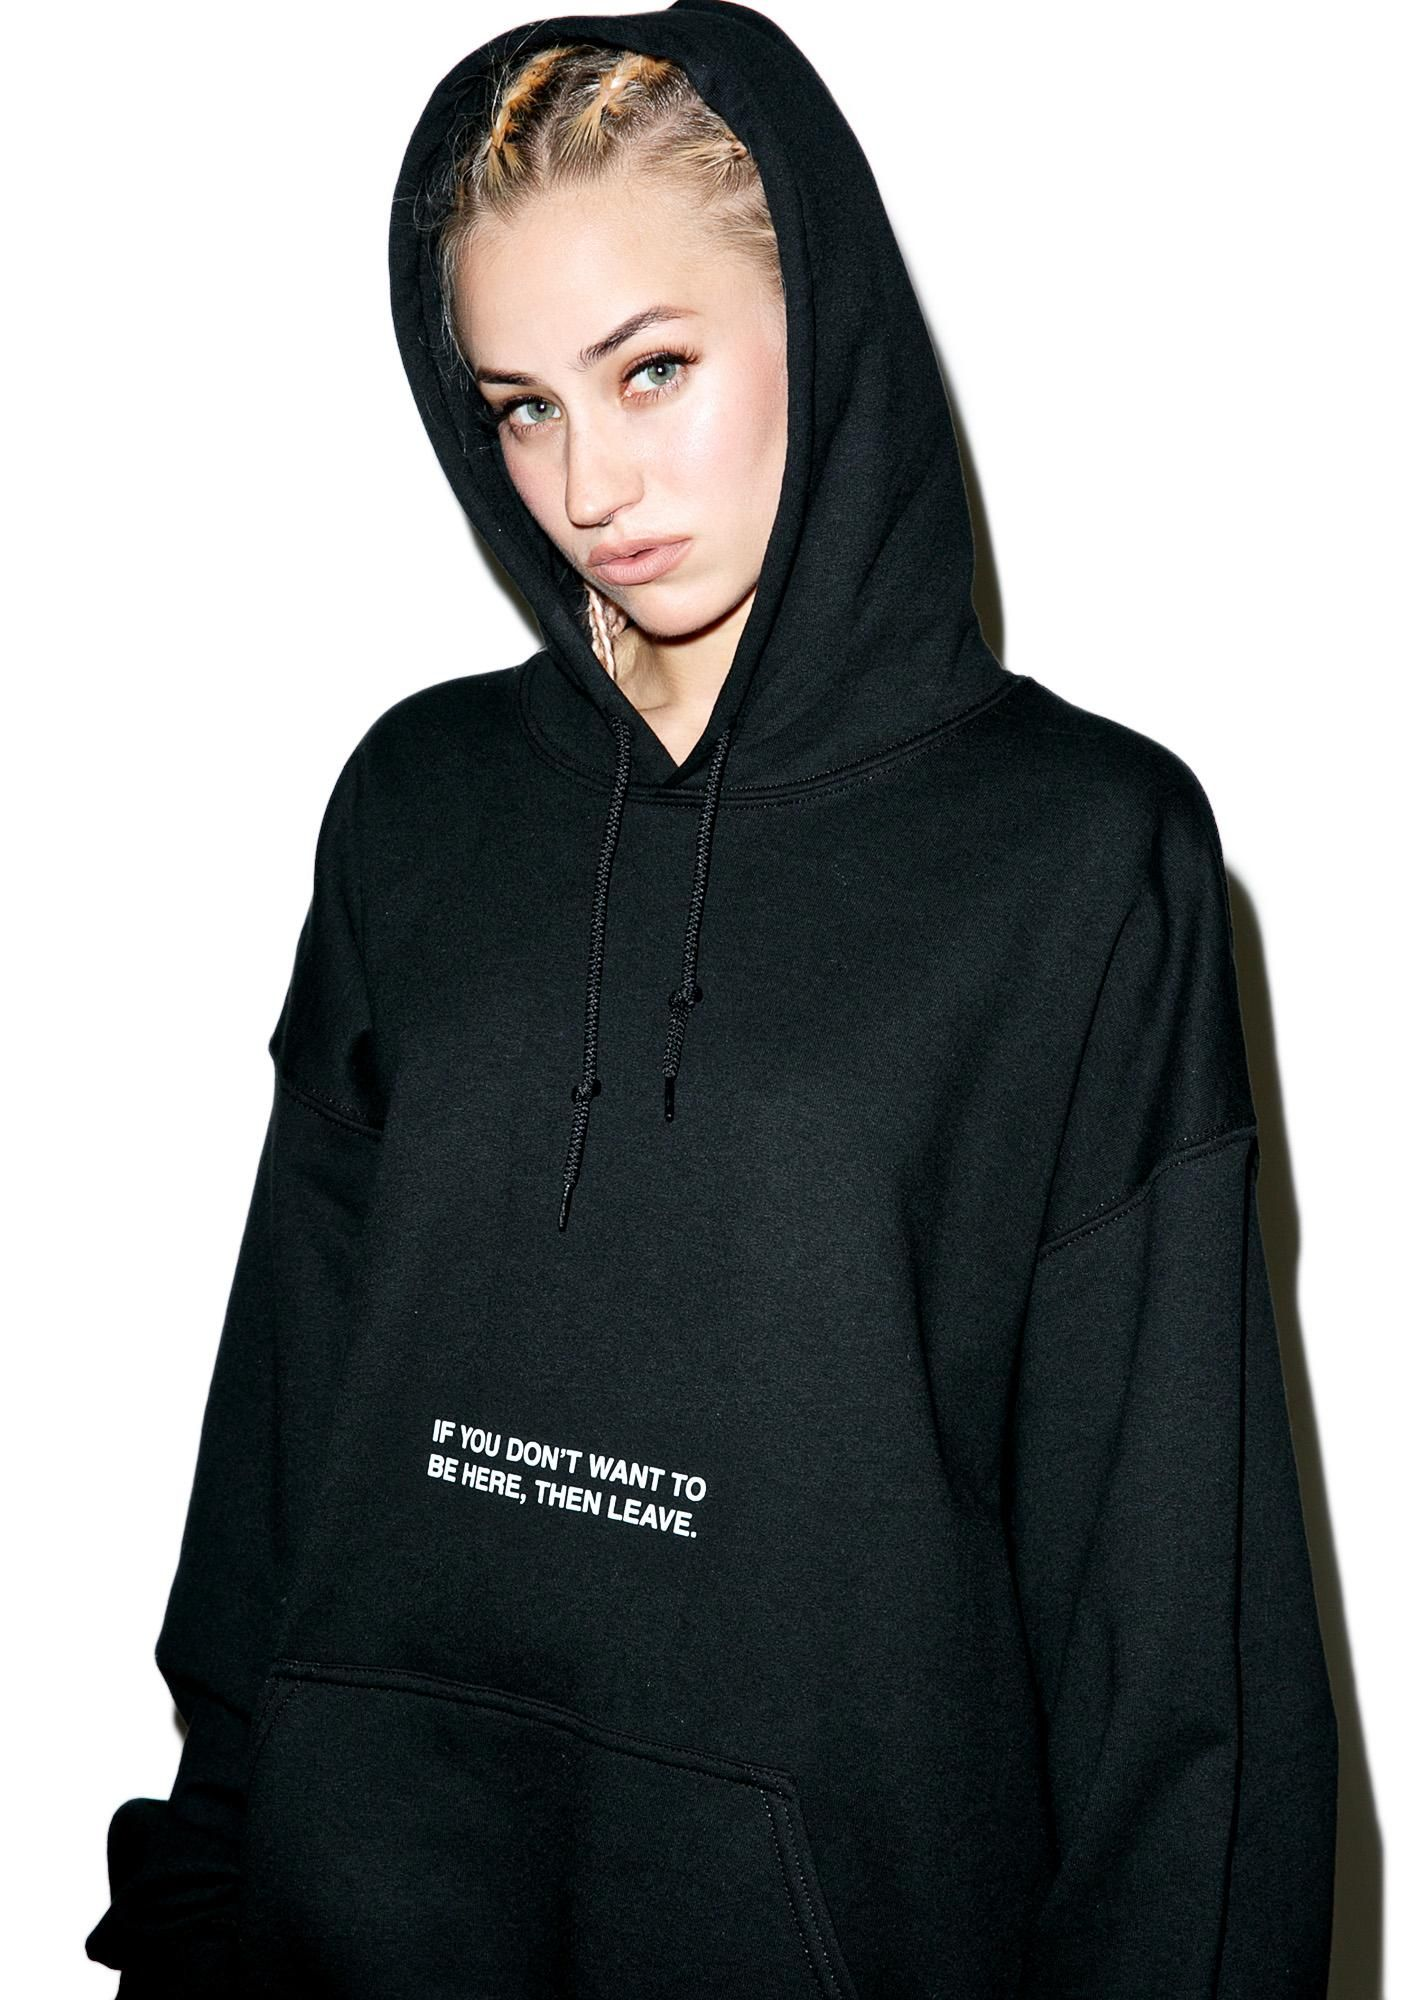 Danielle Guizio Sortez Oversized Hoodie GTFO. Show yer haters where da doors at with this